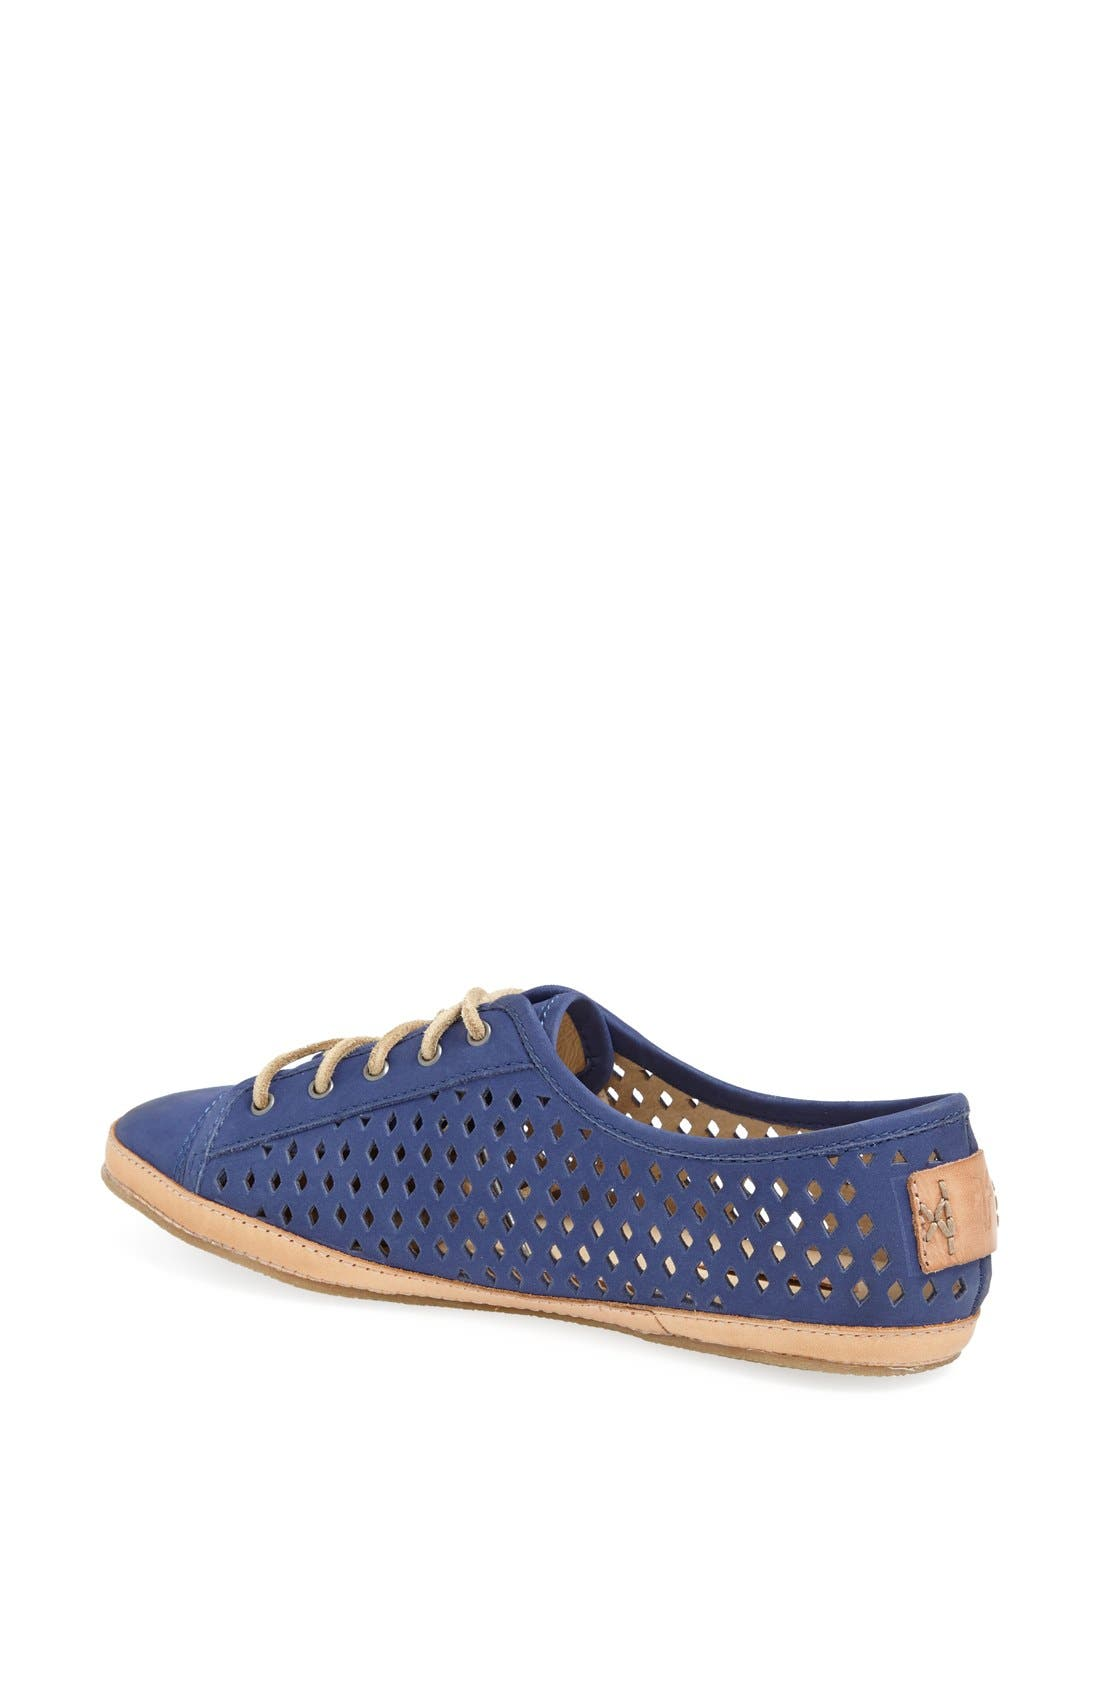 Alternate Image 2  - Frye 'Teagan Low' Perforated Leather Lace-Up